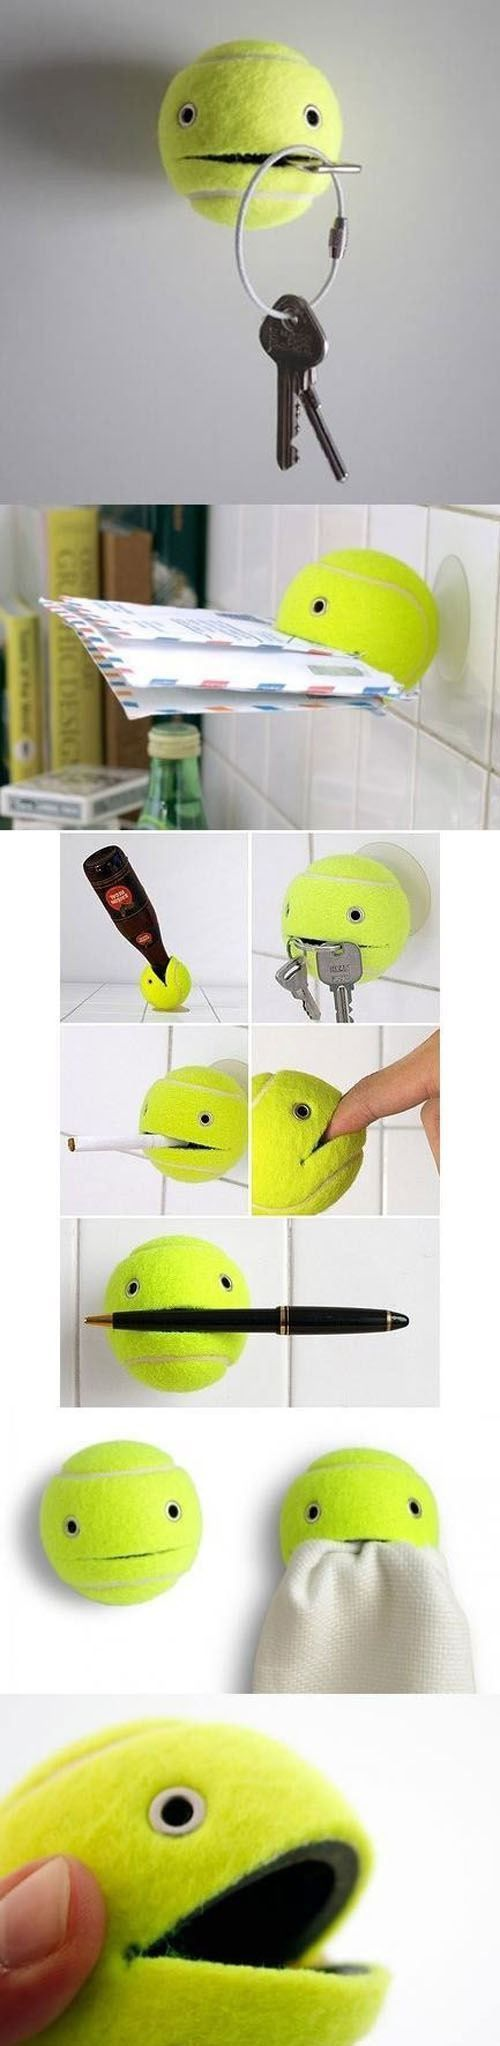 Tennis Ball Key Holder Pictures, Photos, and Images for Facebook, Tumblr, Pinterest, and Twitter